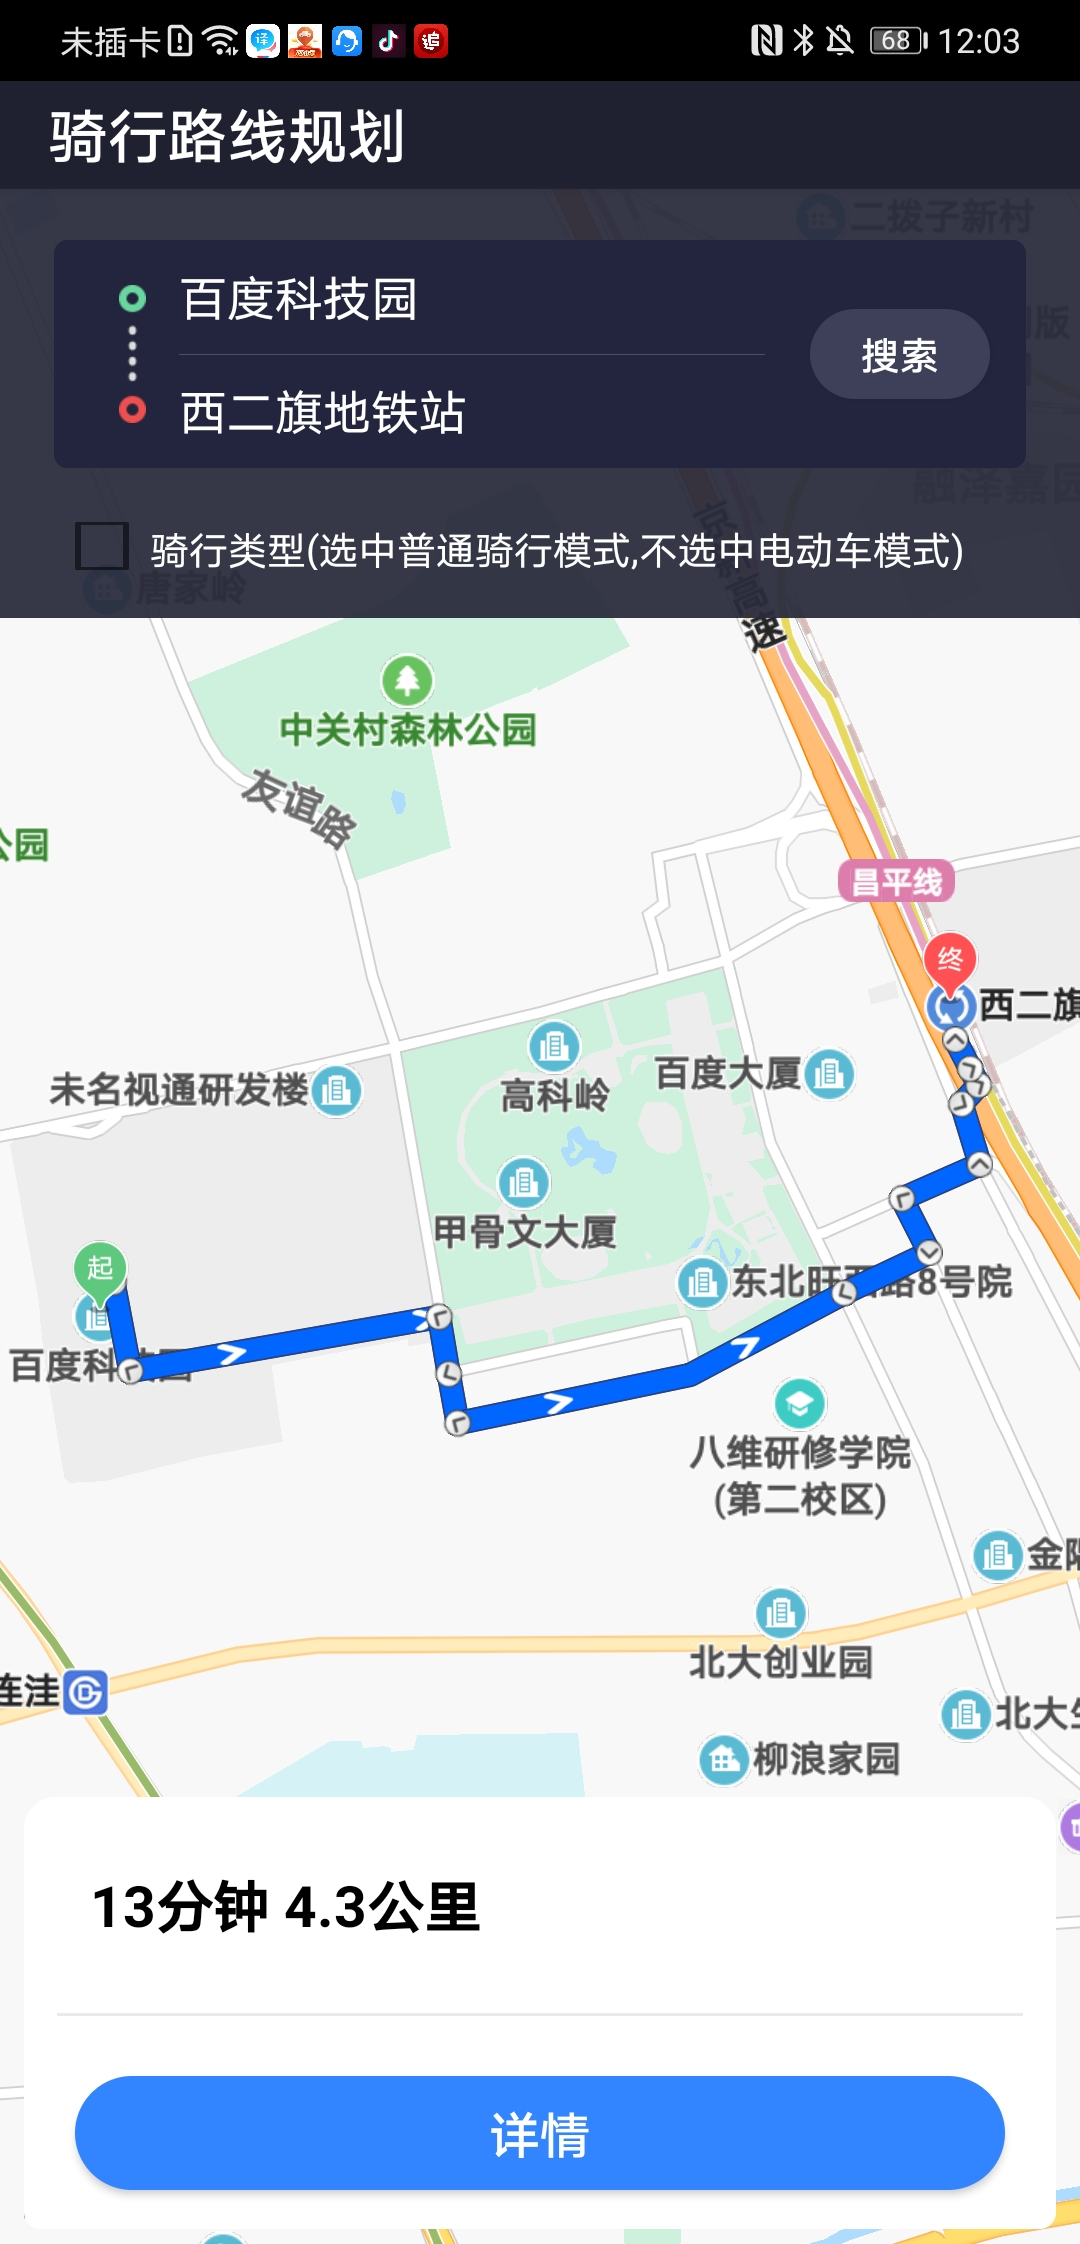 Screenshot_20200610_120335_com.baidu.mapsdkexample.jpg